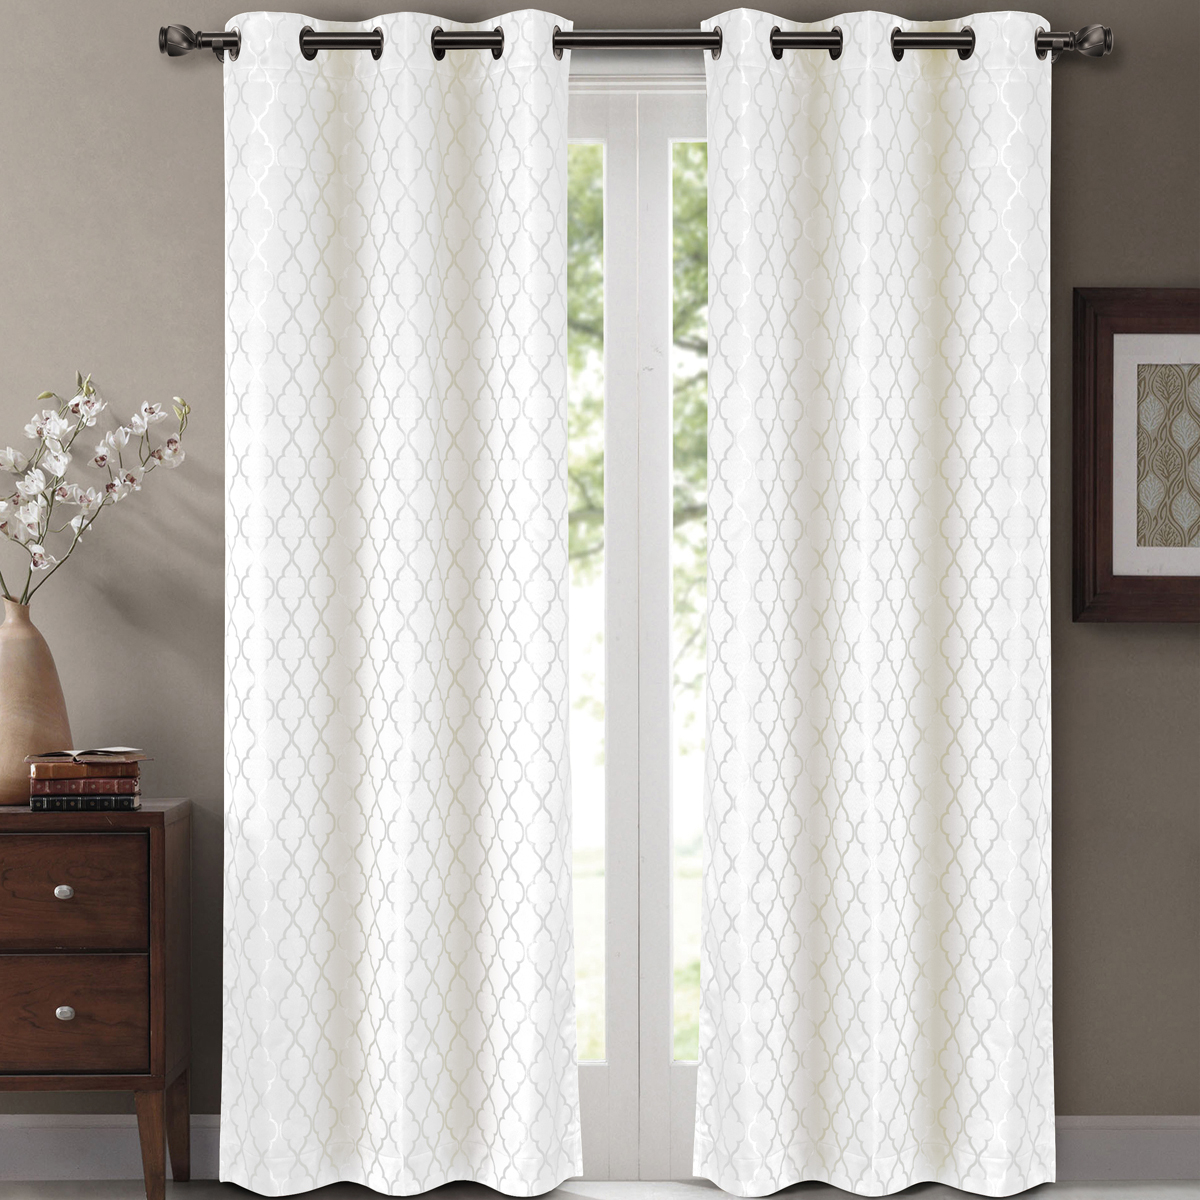 """Well Known Grommet Top Thermal Insulated Blackout Curtain Panel Pairs Throughout Pair ( Set Of 2) Willow Thermal Insulated Blackout Curtain Panels – White – W84 X L63"""" – Walmart (View 5 of 20)"""